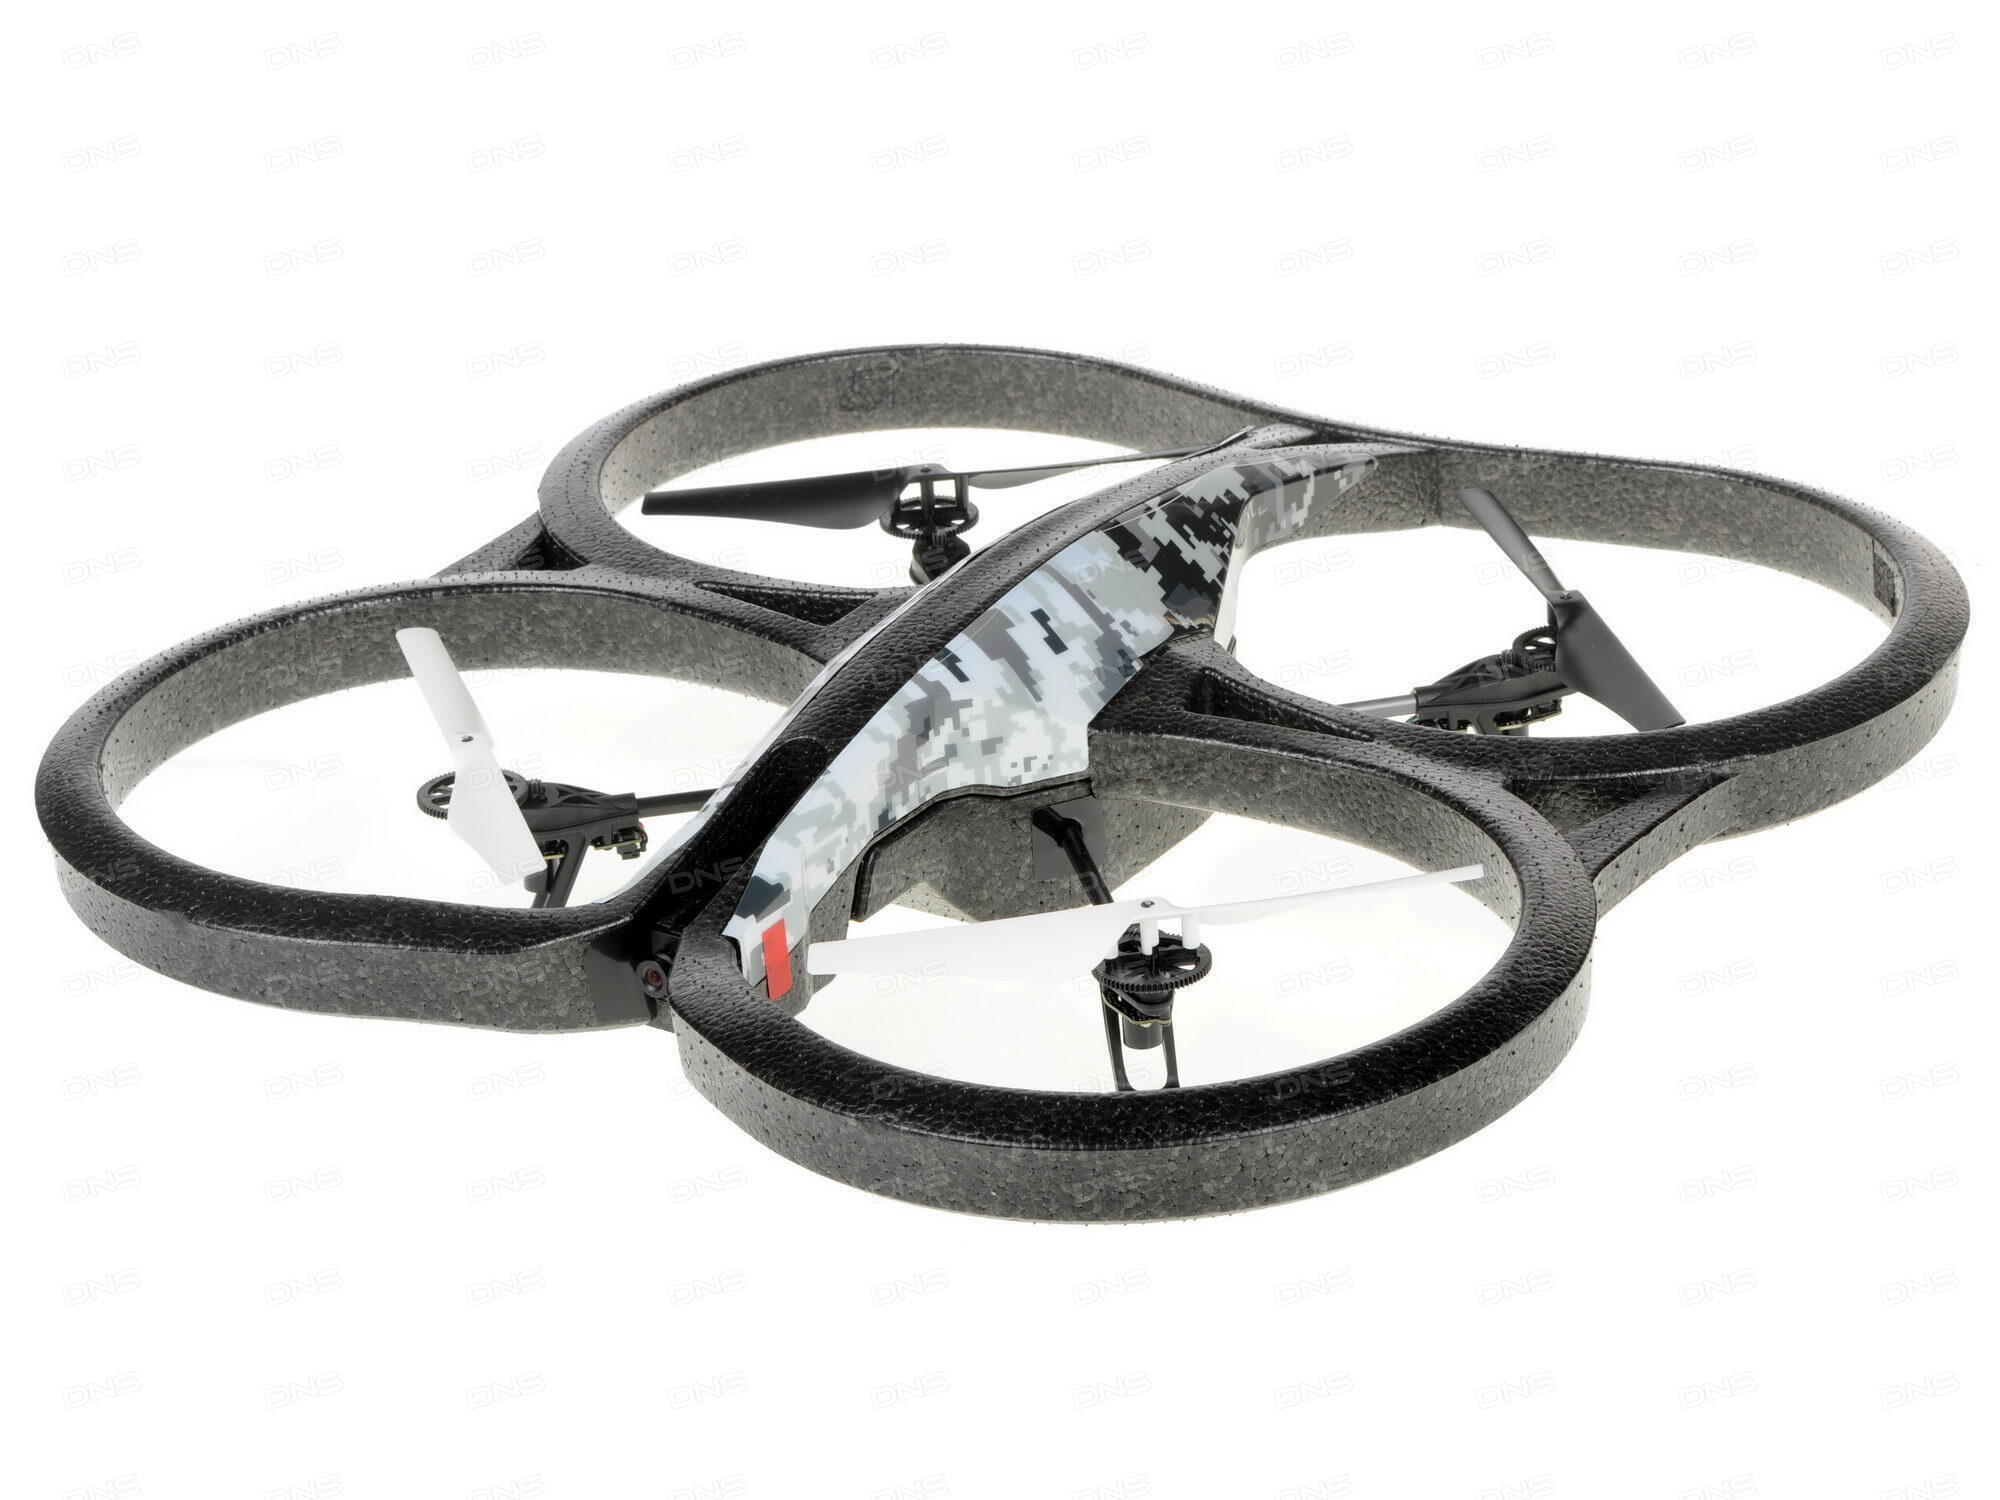 drone parrot 2 0 elite edition with Opinion on Watch besides Parrot Ardrone 20 Elite Edition Jungle Quadricottero Rtf Con Videocamera Fotocamera further 472 Huawei Y5 Ii Screen Protector also F 117852414 Mai3411889150002 besides Opinion.